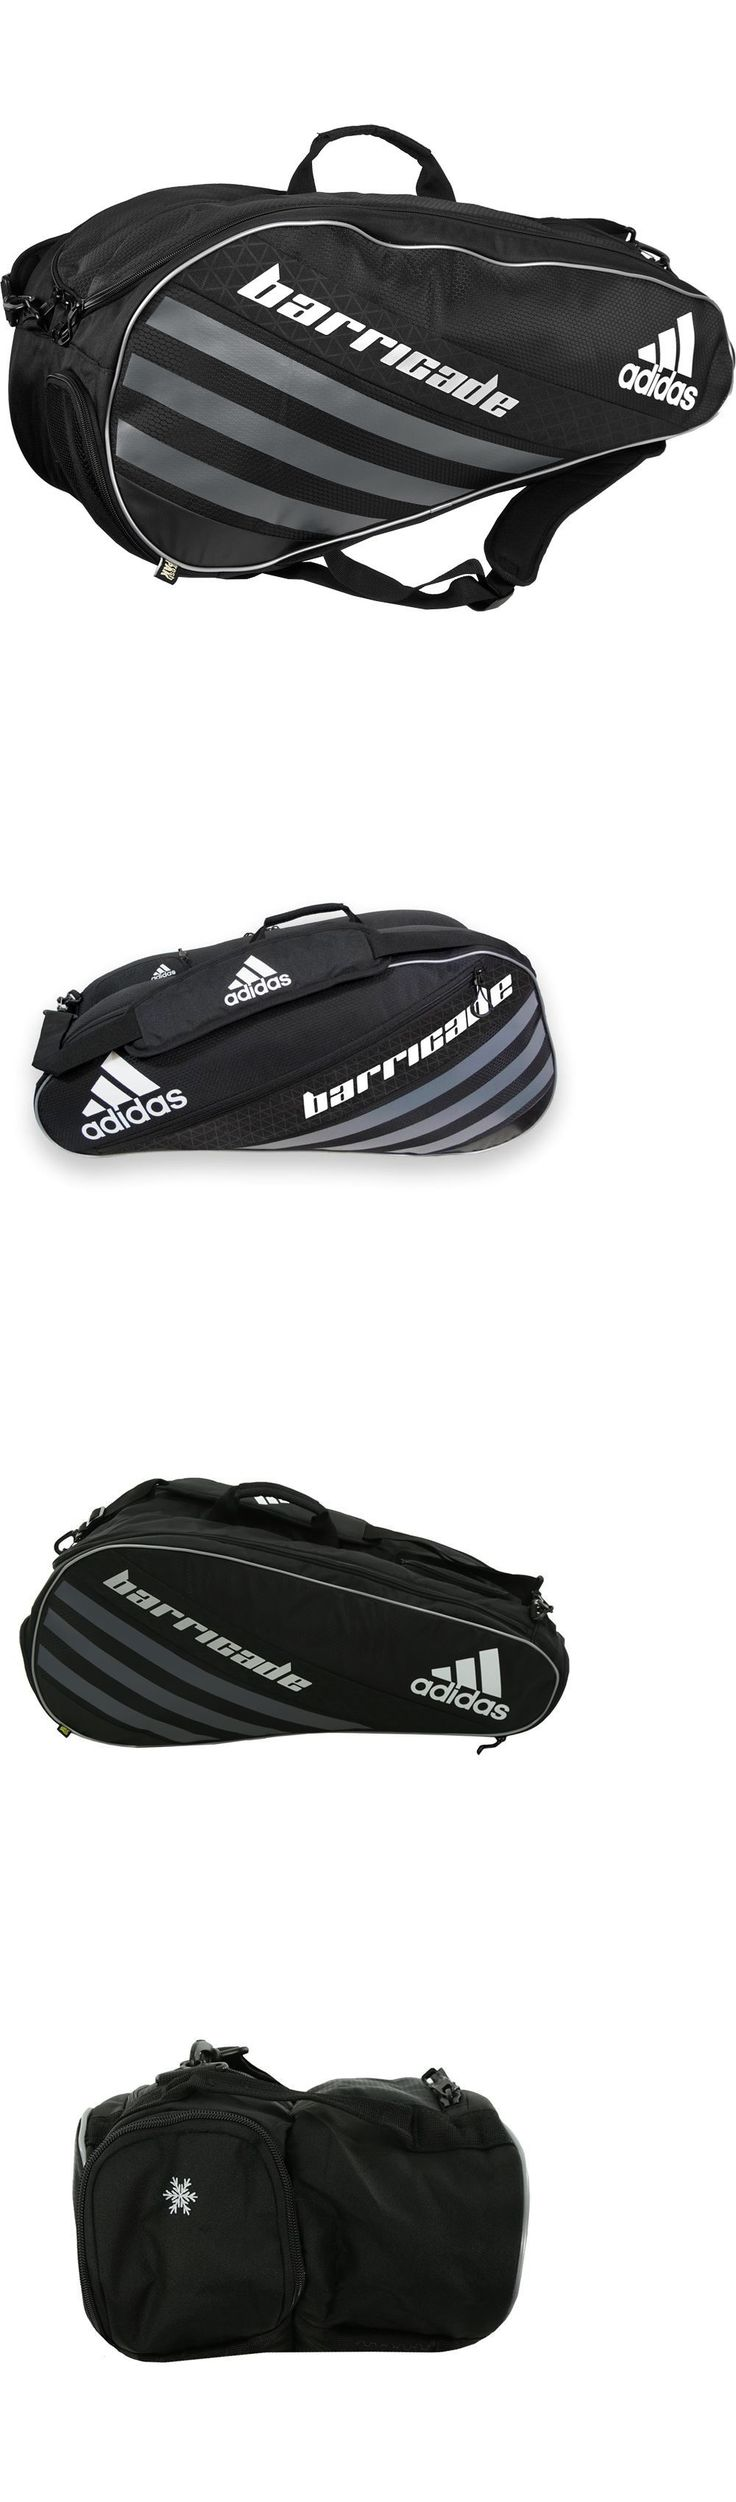 Bags 20869: Nwt Adidas Barricade Iv Tour 6 Pack Tennis Bag Lifetime Warranty -> BUY IT NOW ONLY: $59.95 on eBay!